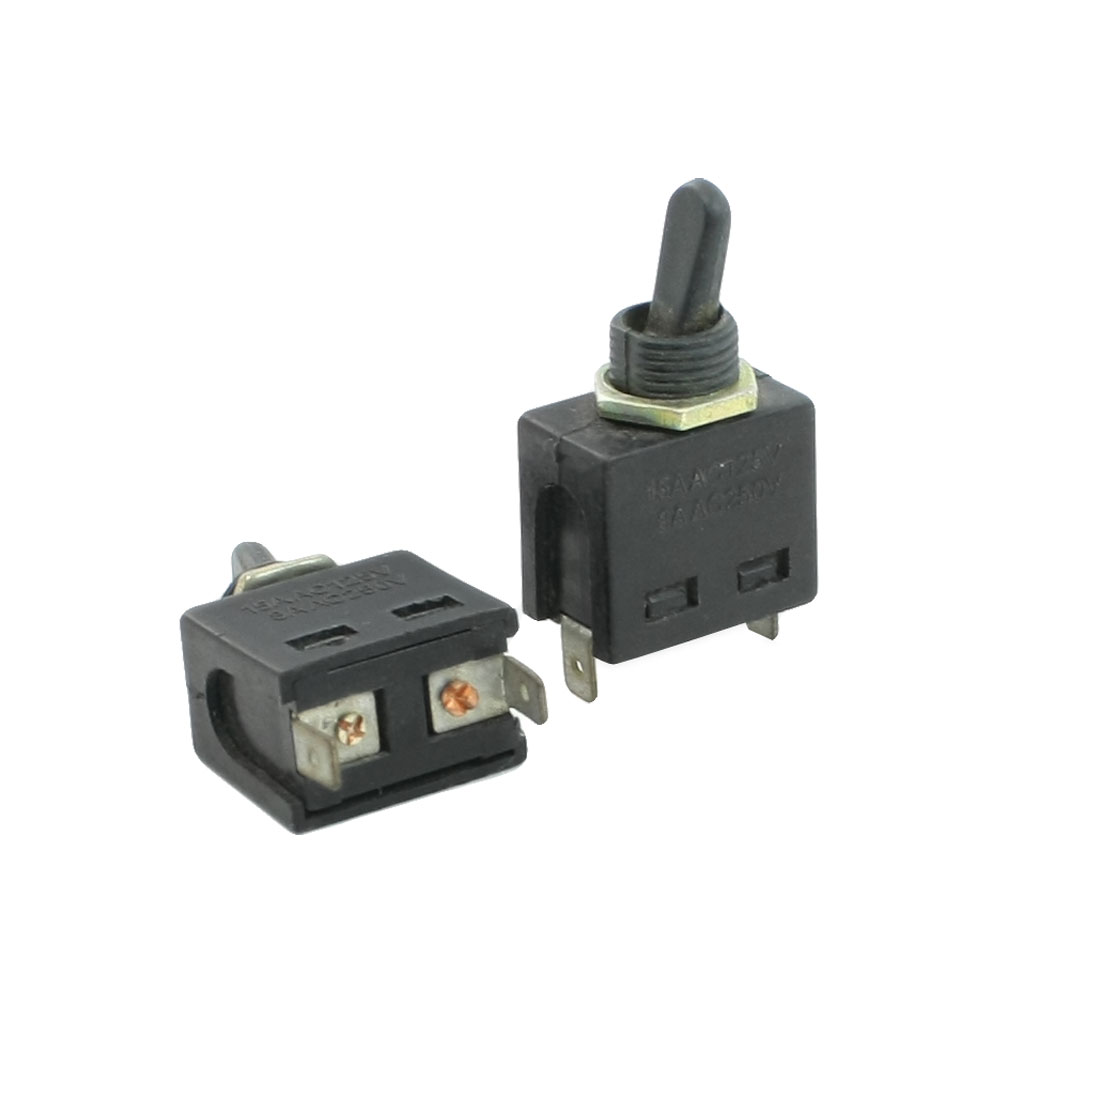 Panel Mounting N.O 2 Terminals SPST ON-OFF Toggle Switch 8A/250VAC 15A/125VAC